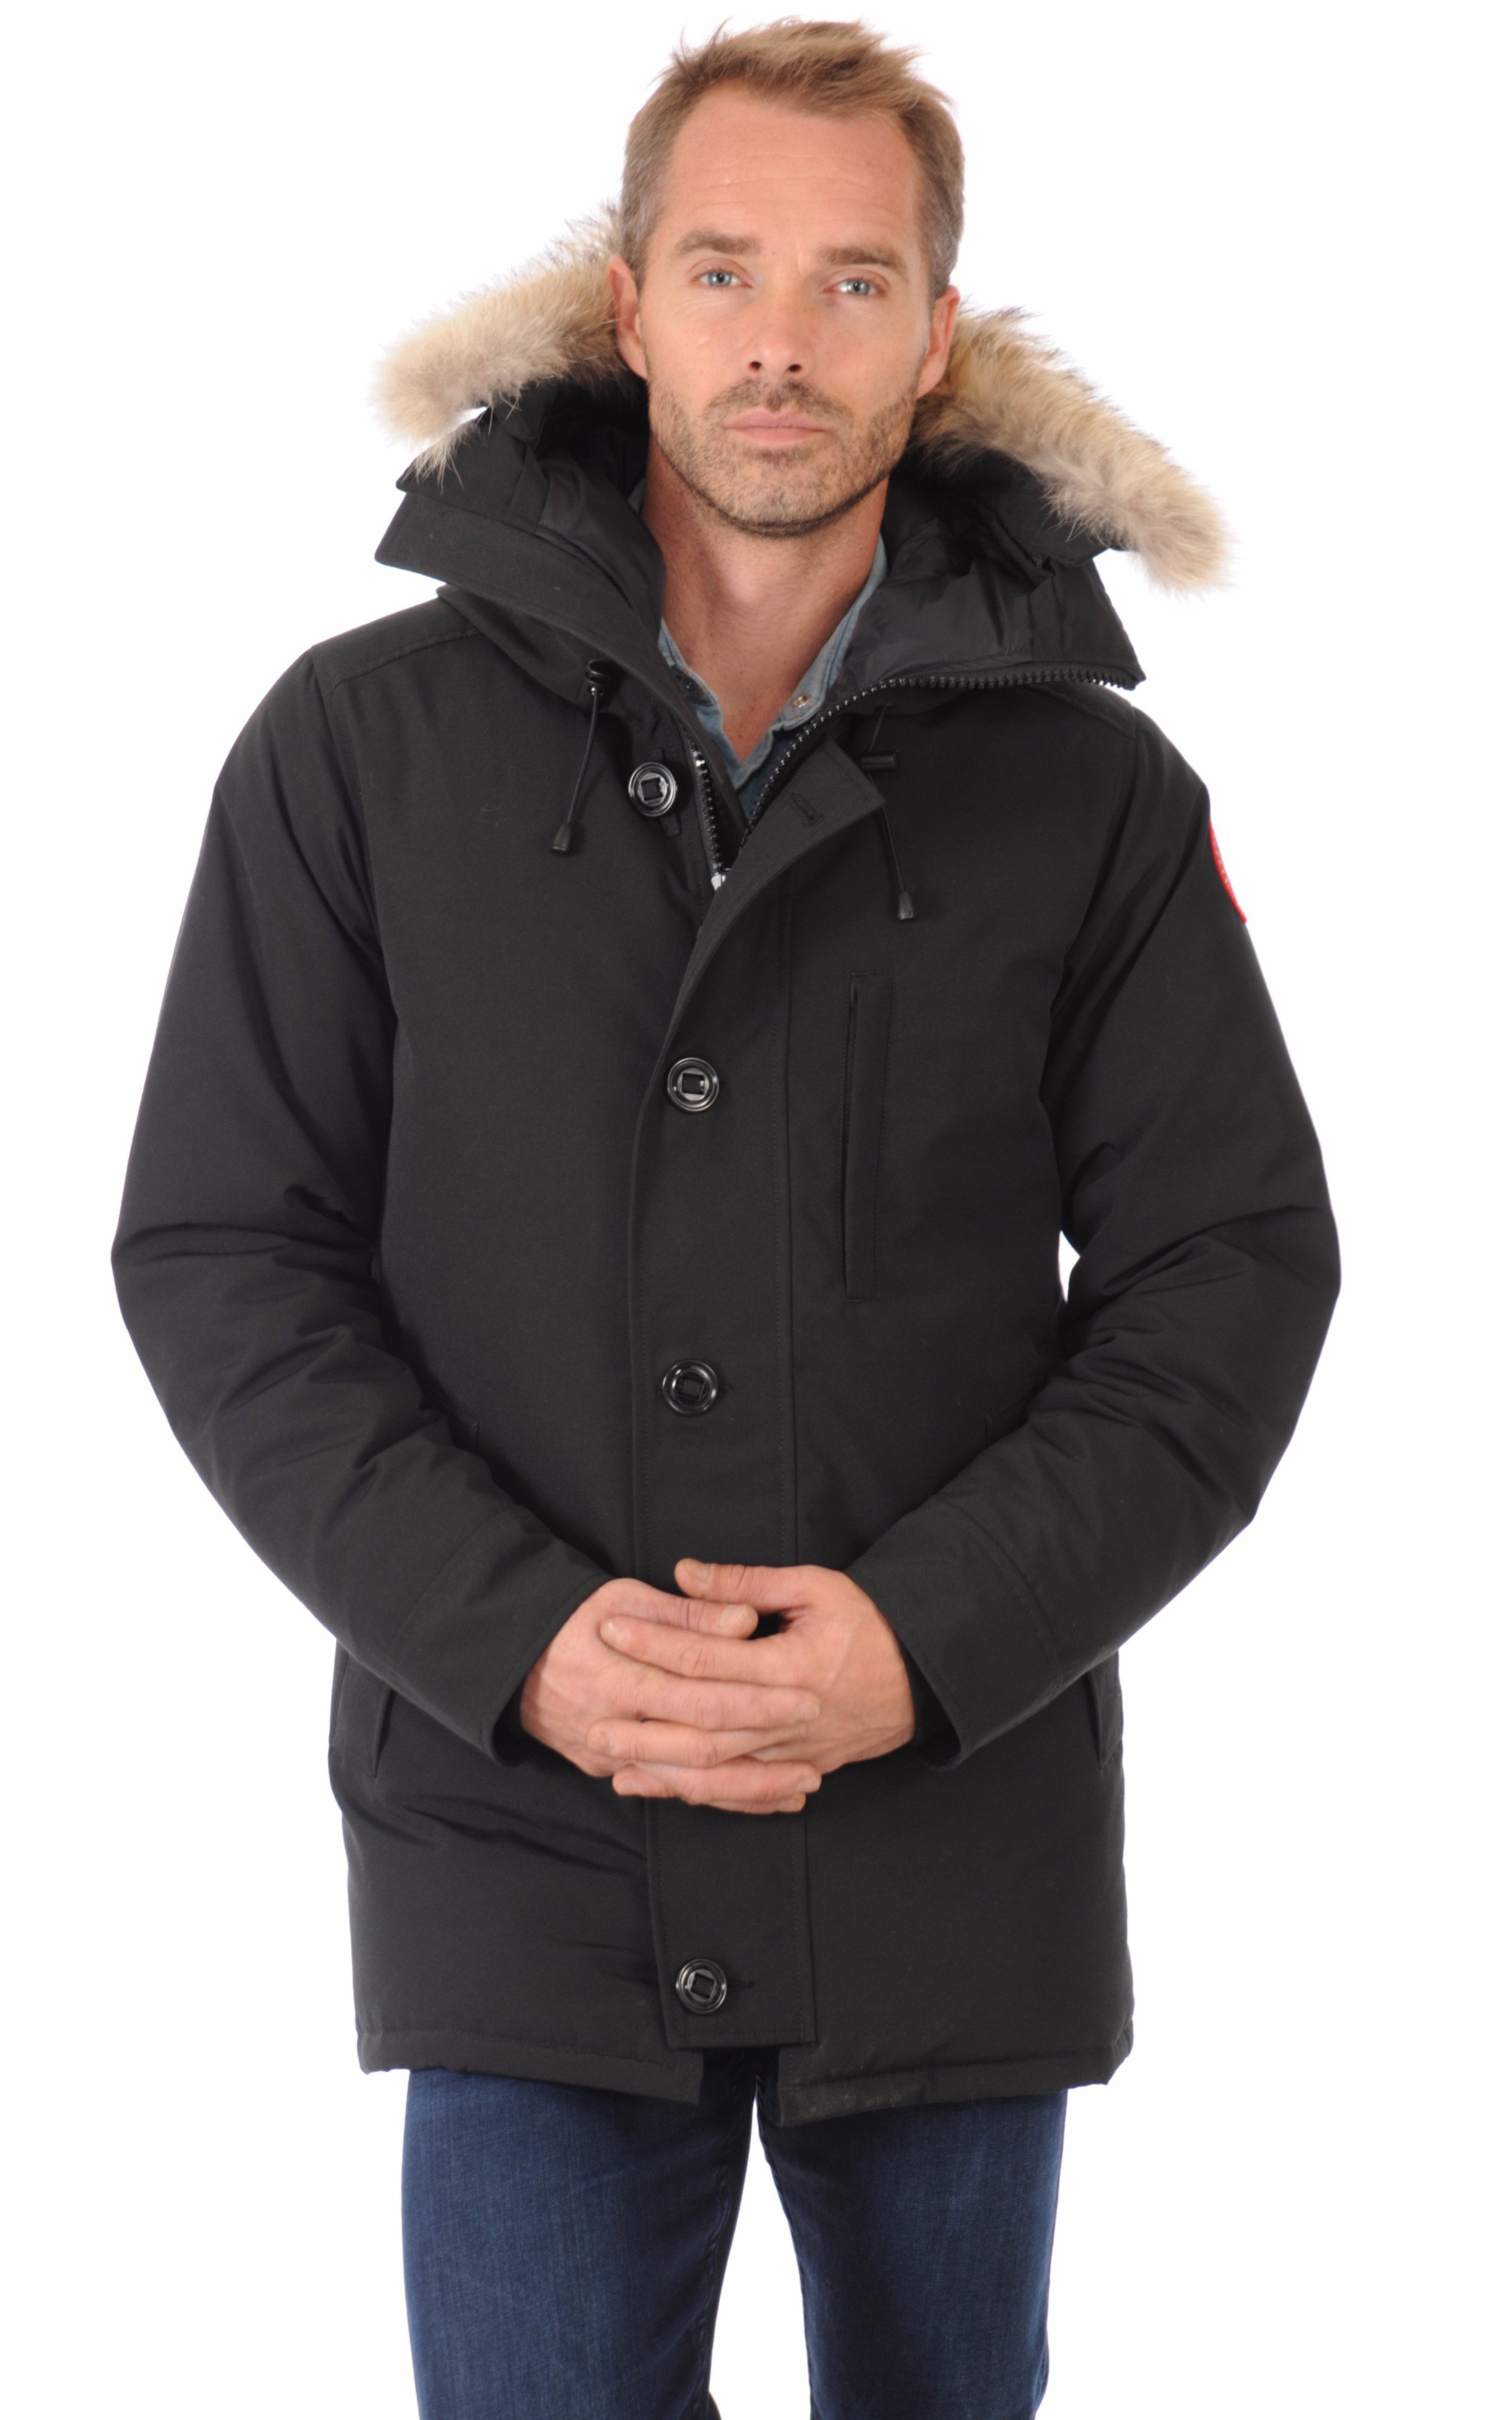 parka the chateau black canada goose la canadienne doudoune parka textile noir. Black Bedroom Furniture Sets. Home Design Ideas